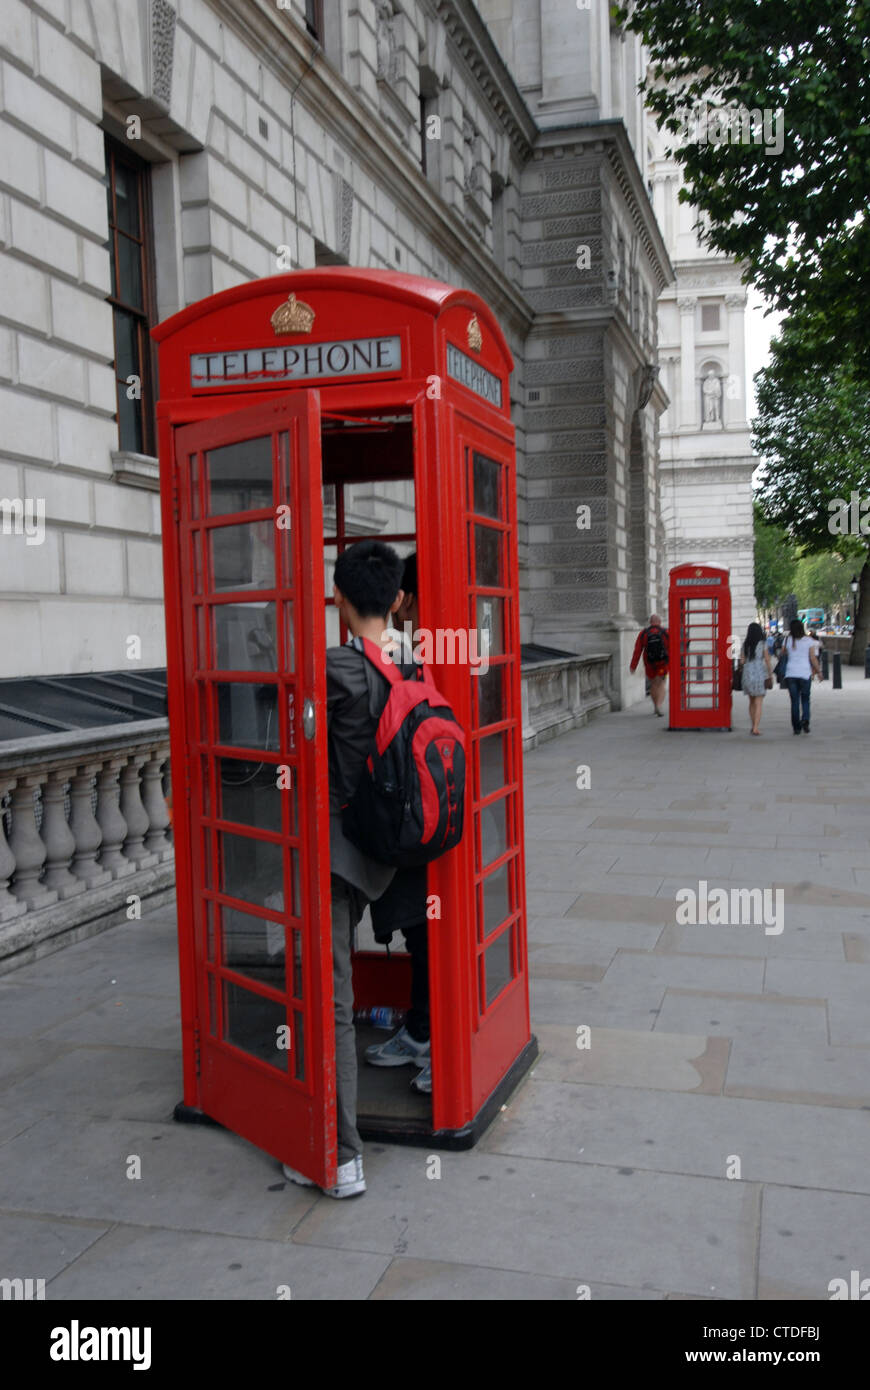 Telephone kiosks in use  on Whitehall pavement in  London England - Stock Image